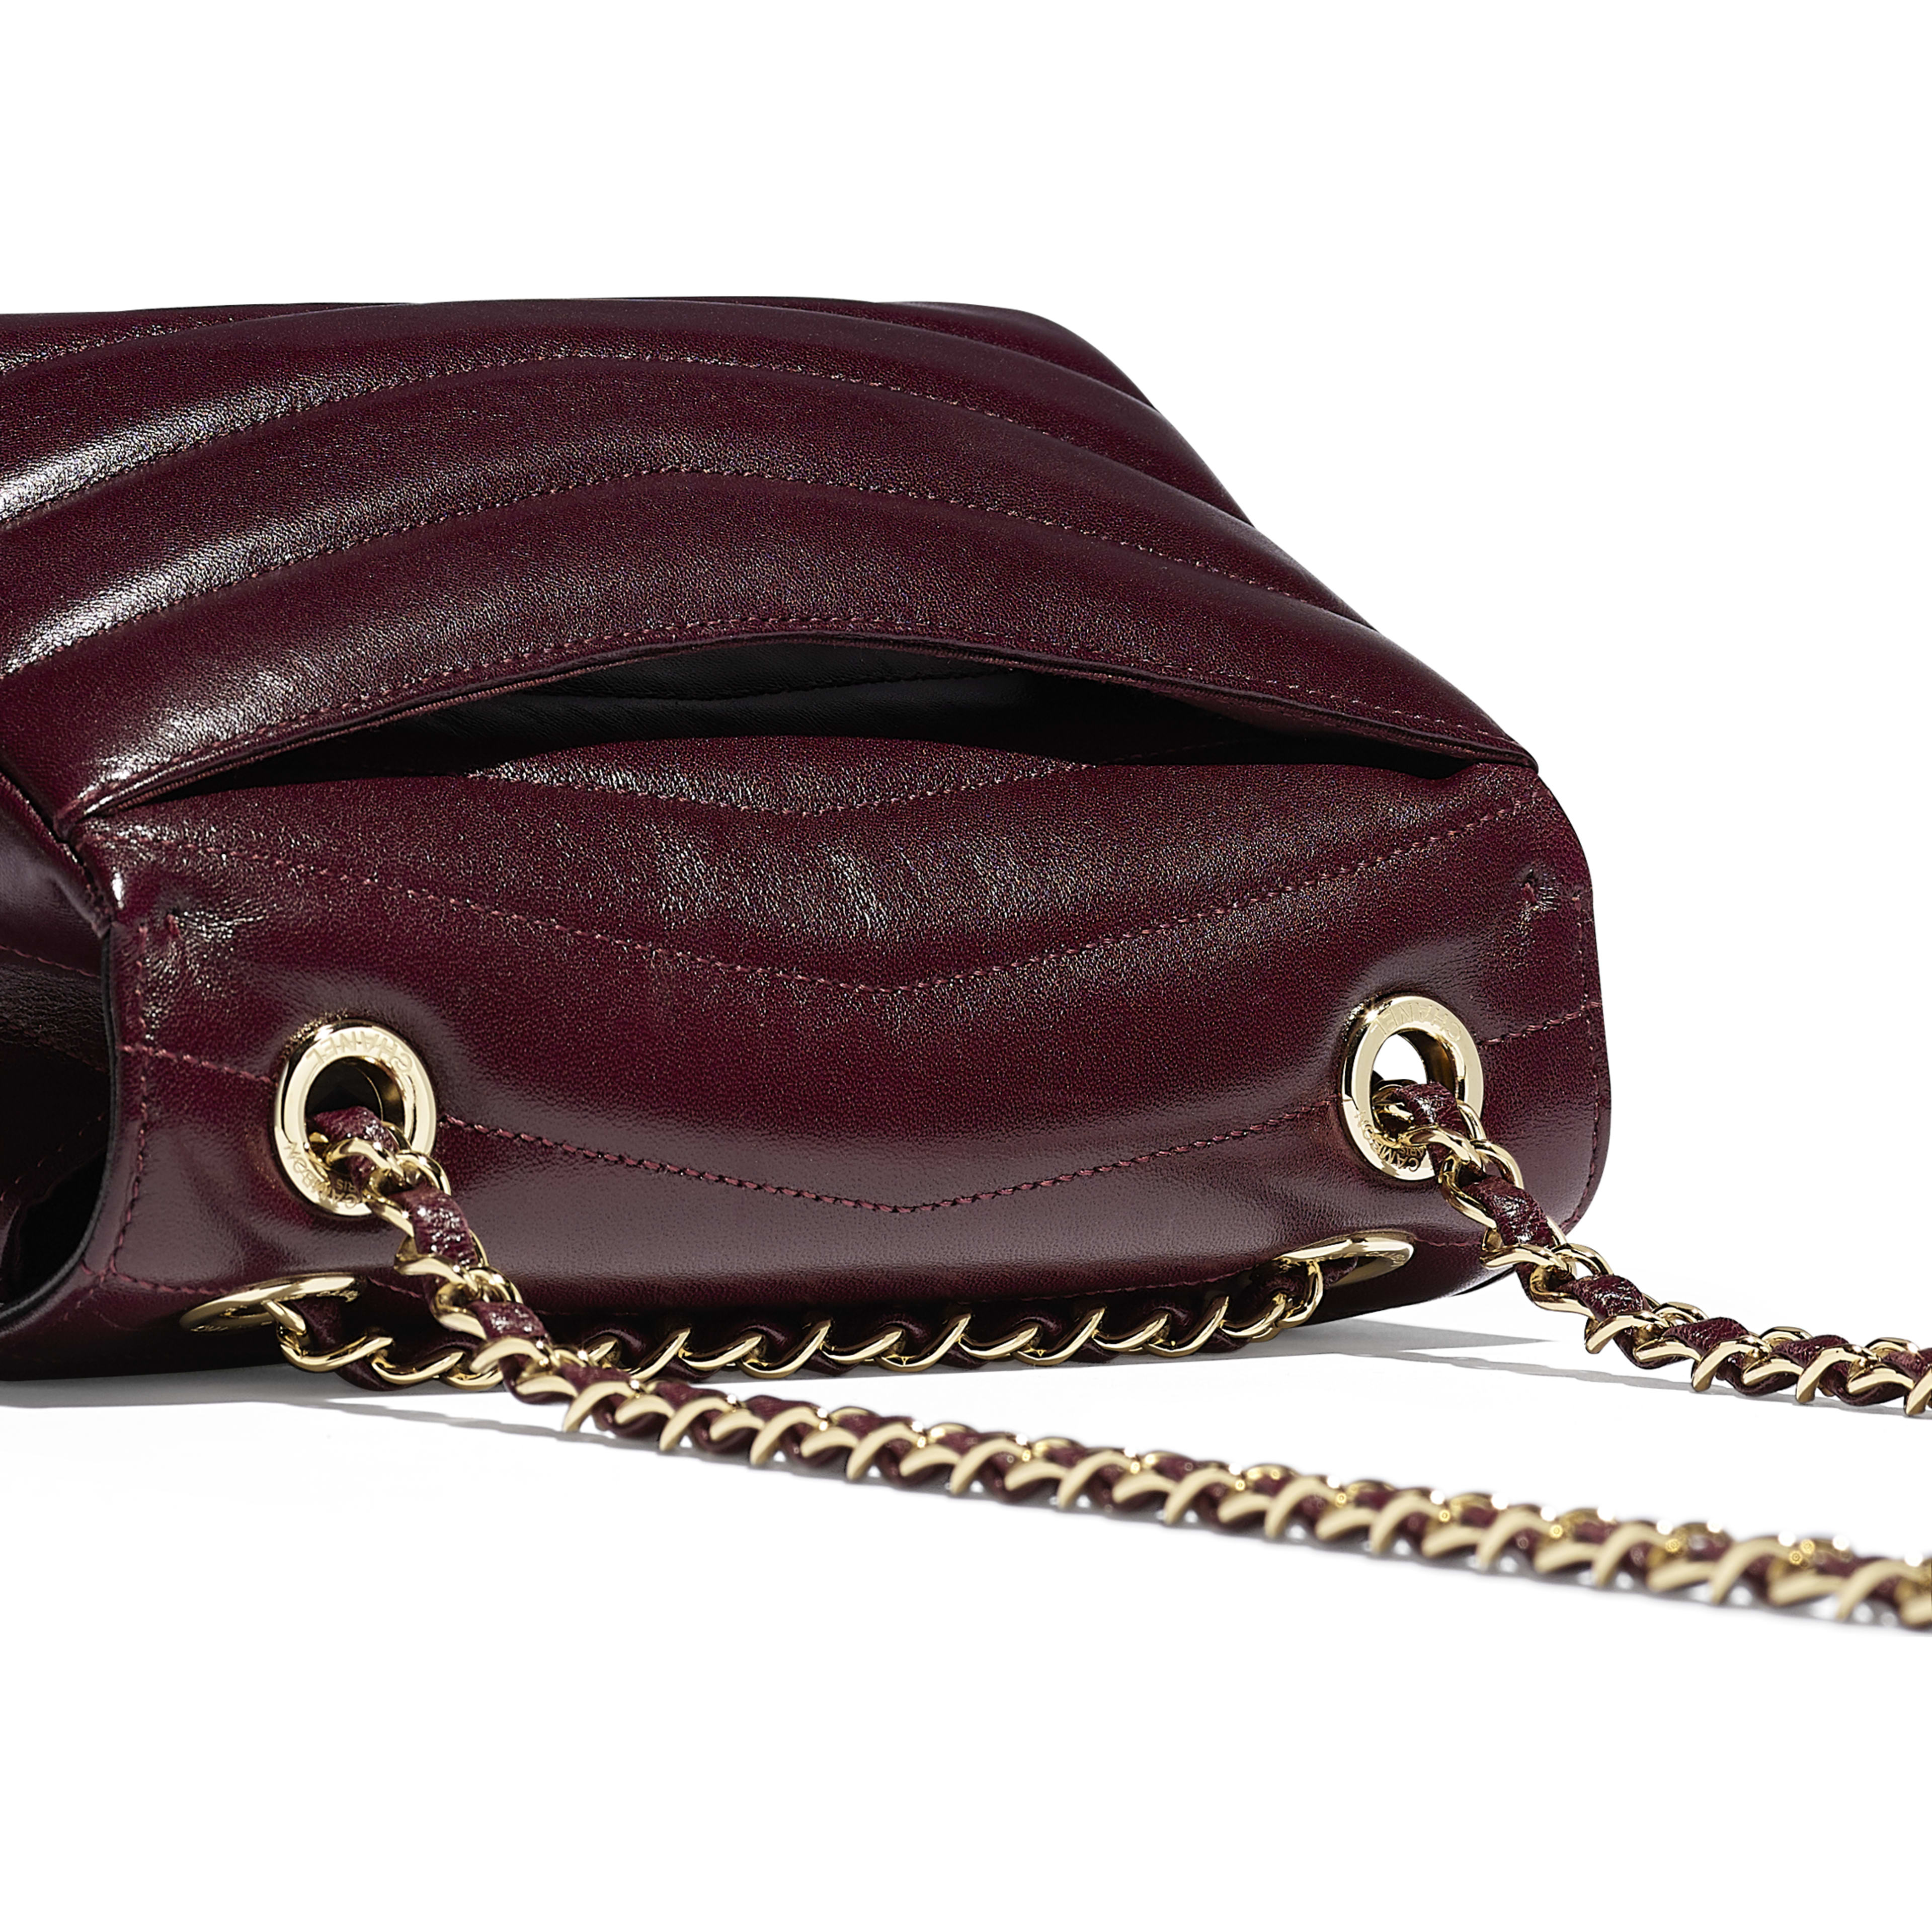 Flap Bag - Burgundy - Lambskin - Extra view - see full sized version